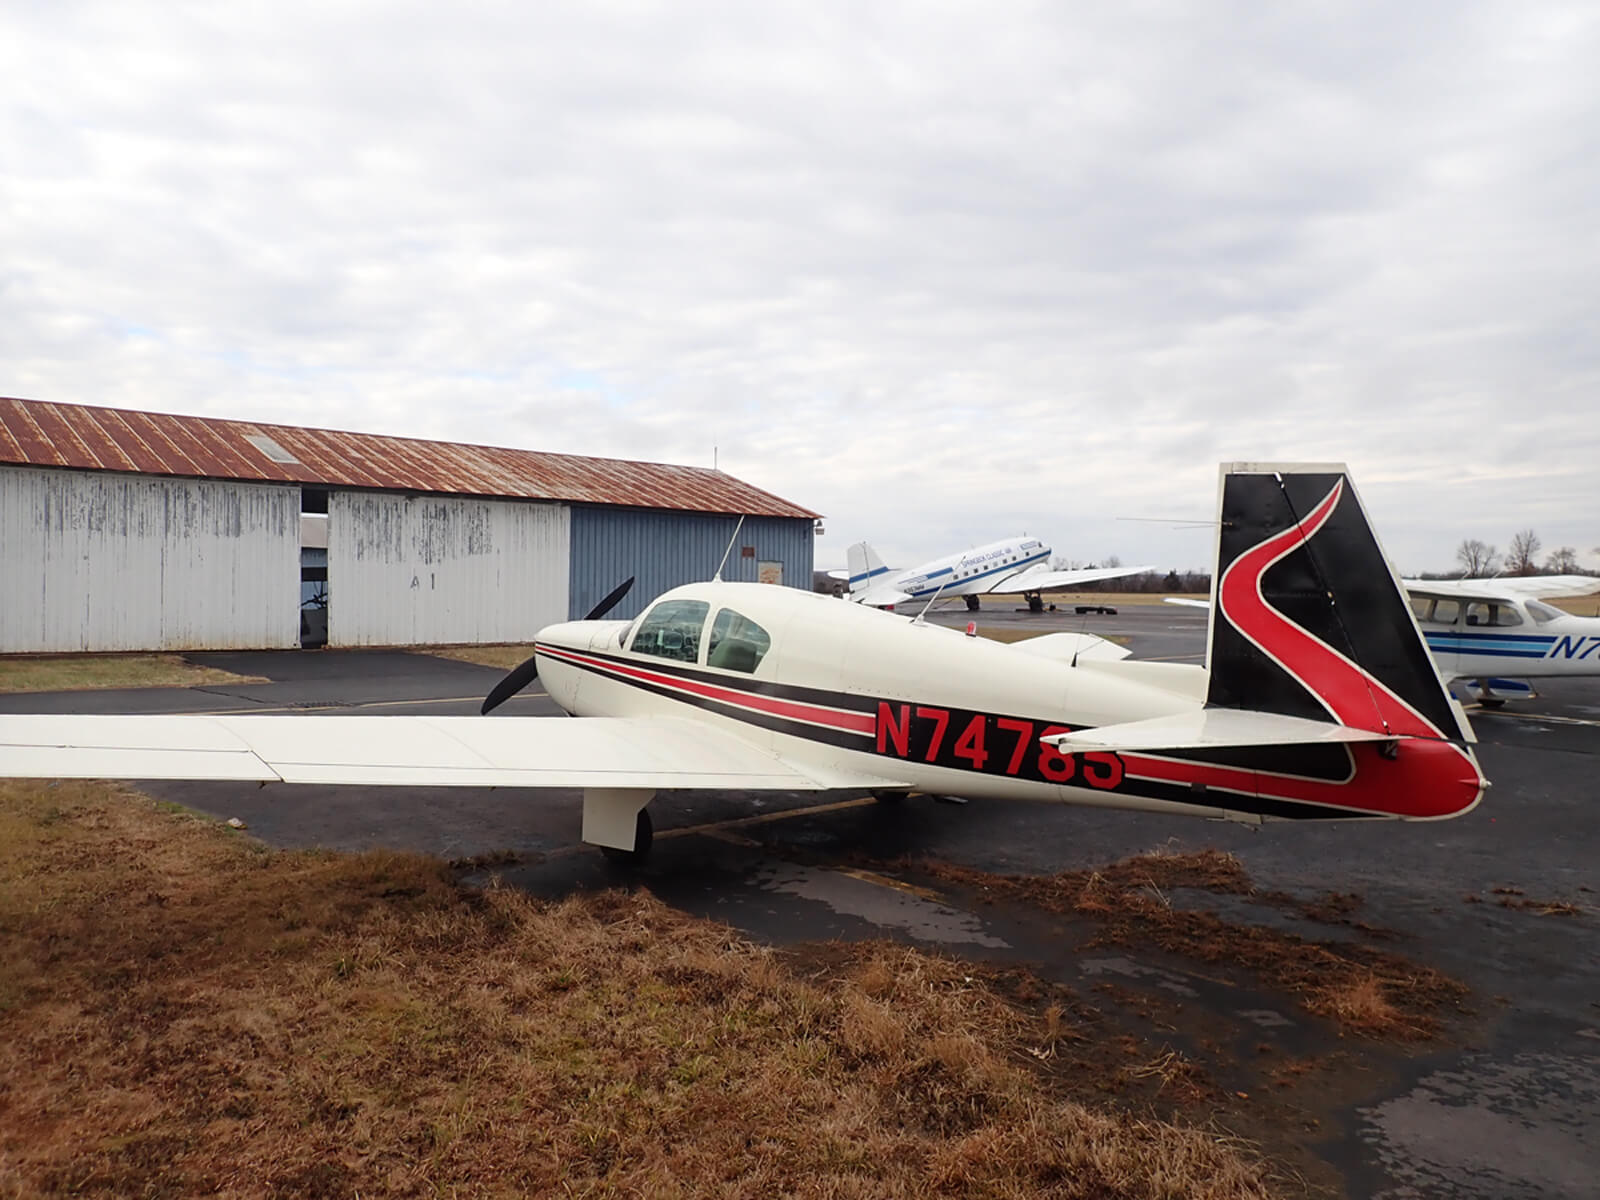 1961 Mooney M20B - FOR SALE at Princeton Airport